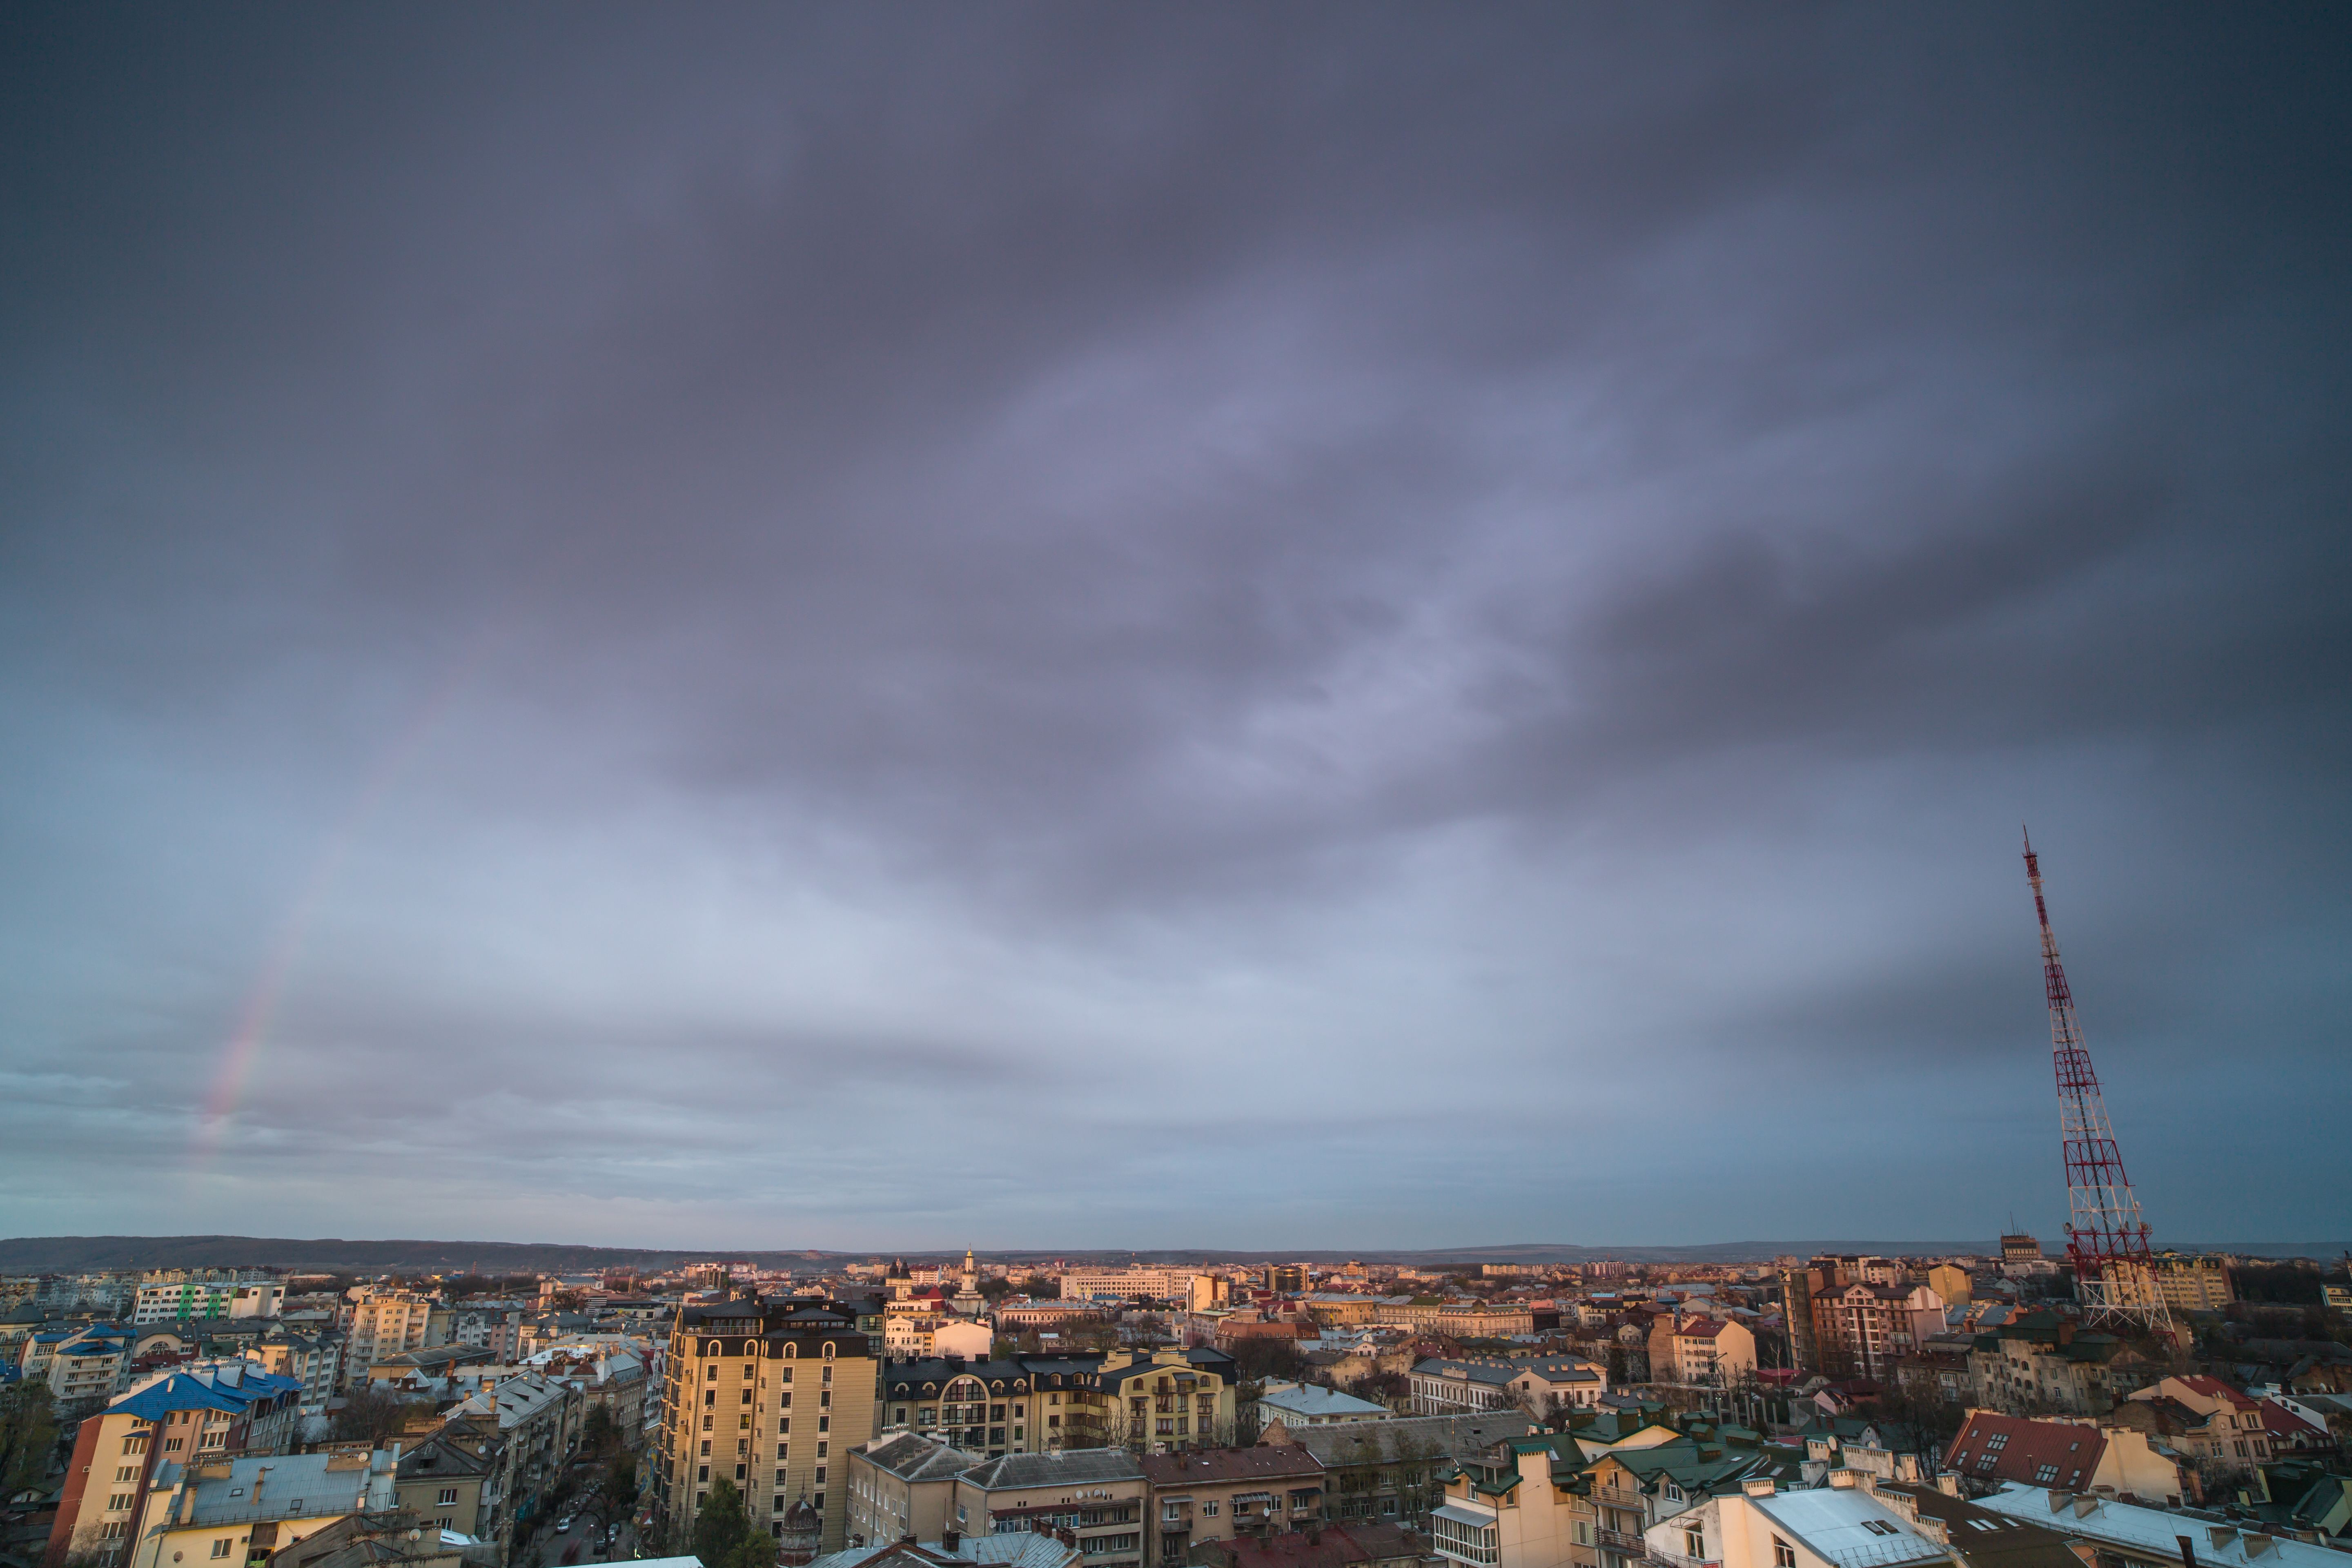 Sunset with rainbow view in a european city example image 1